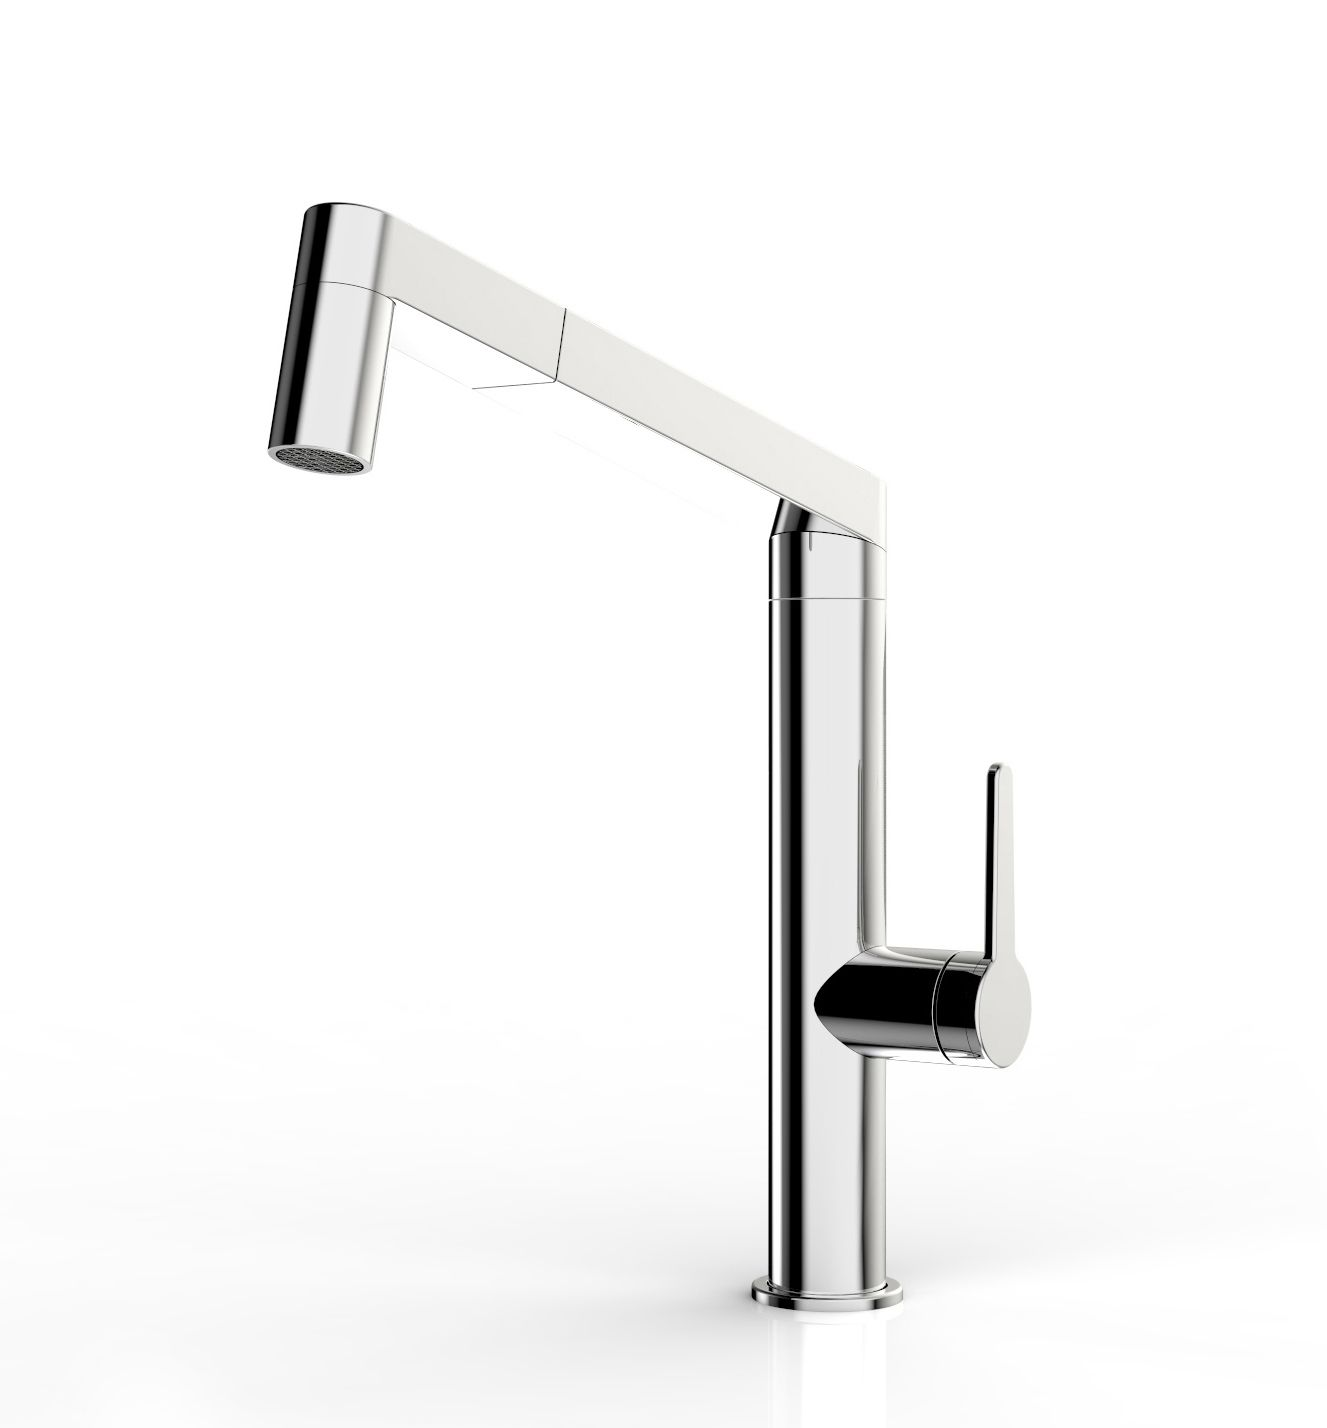 Panera-S _ stainless steel kitchen faucet for Blanco Steel Art ...